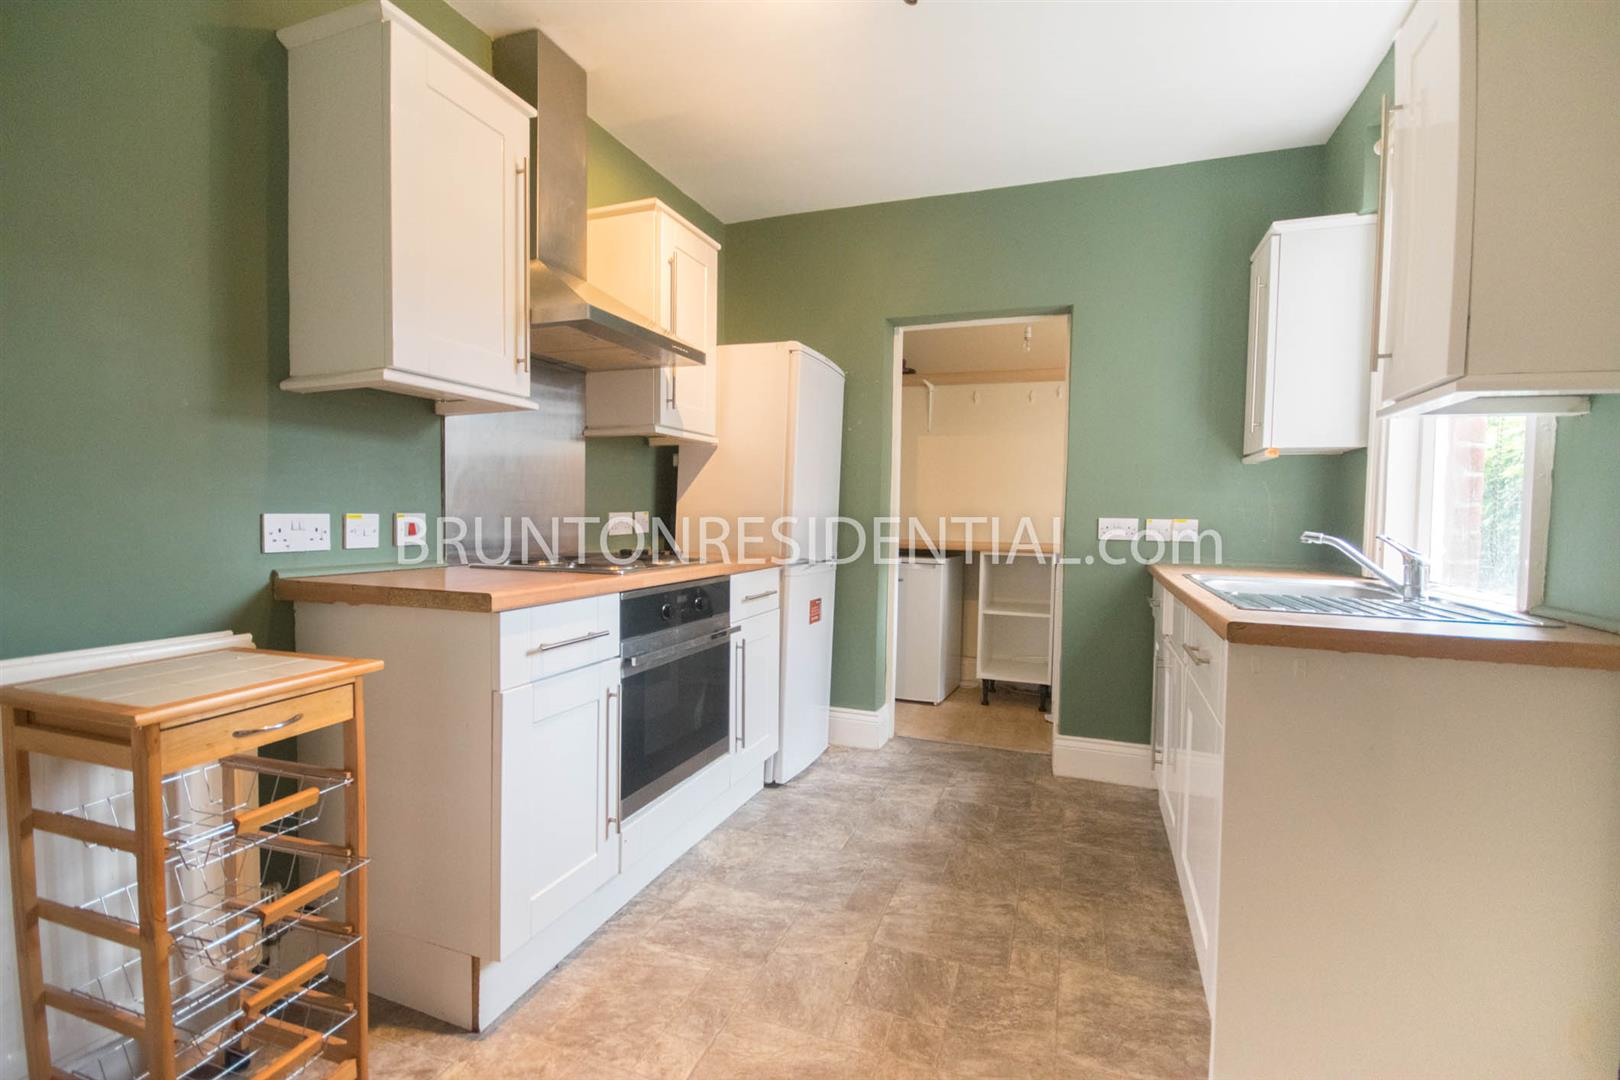 4 bed terraced house to rent in Newcastle Upon Tyne, NE6 5SH - Property Image 1